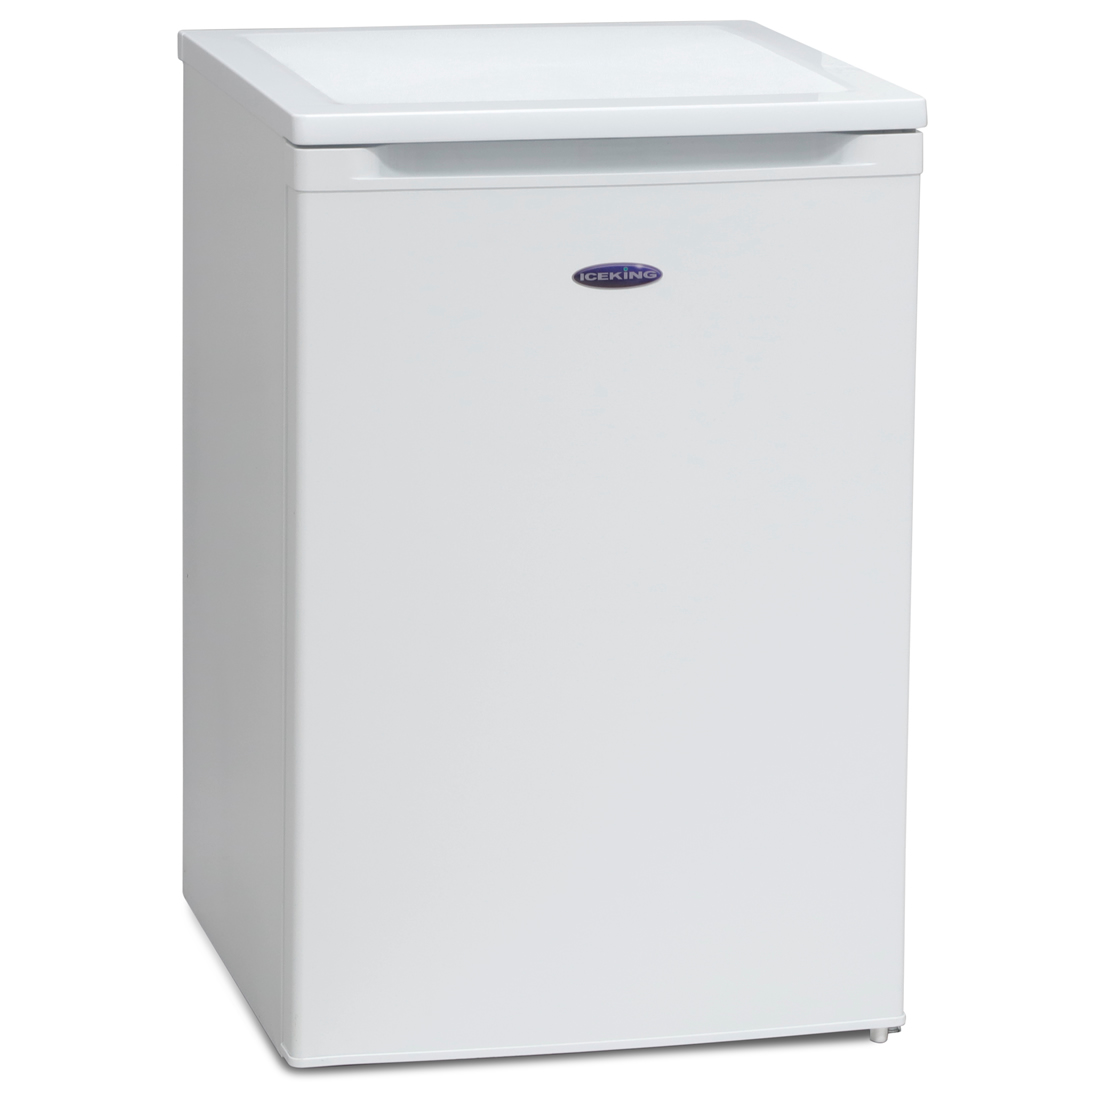 113litres Fridge with Ice Box Class A+ White